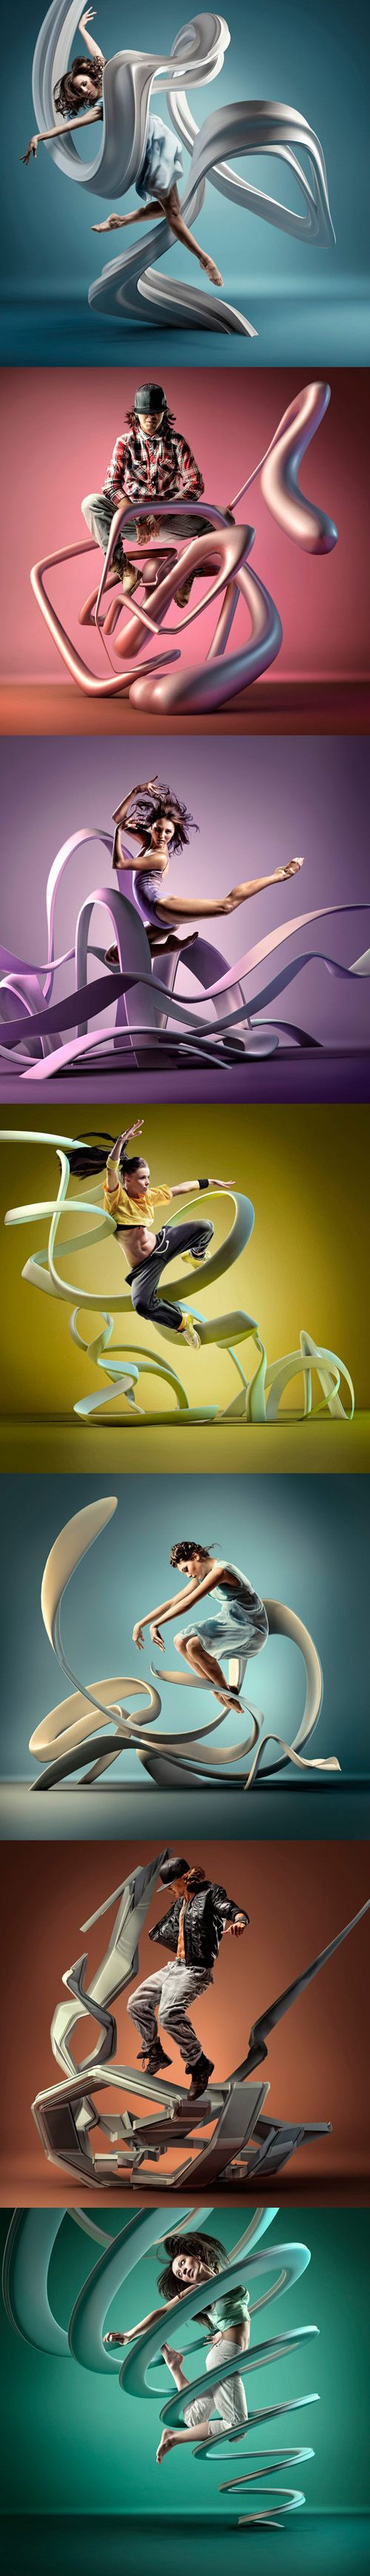 Mike Campau's Dancing Emotions